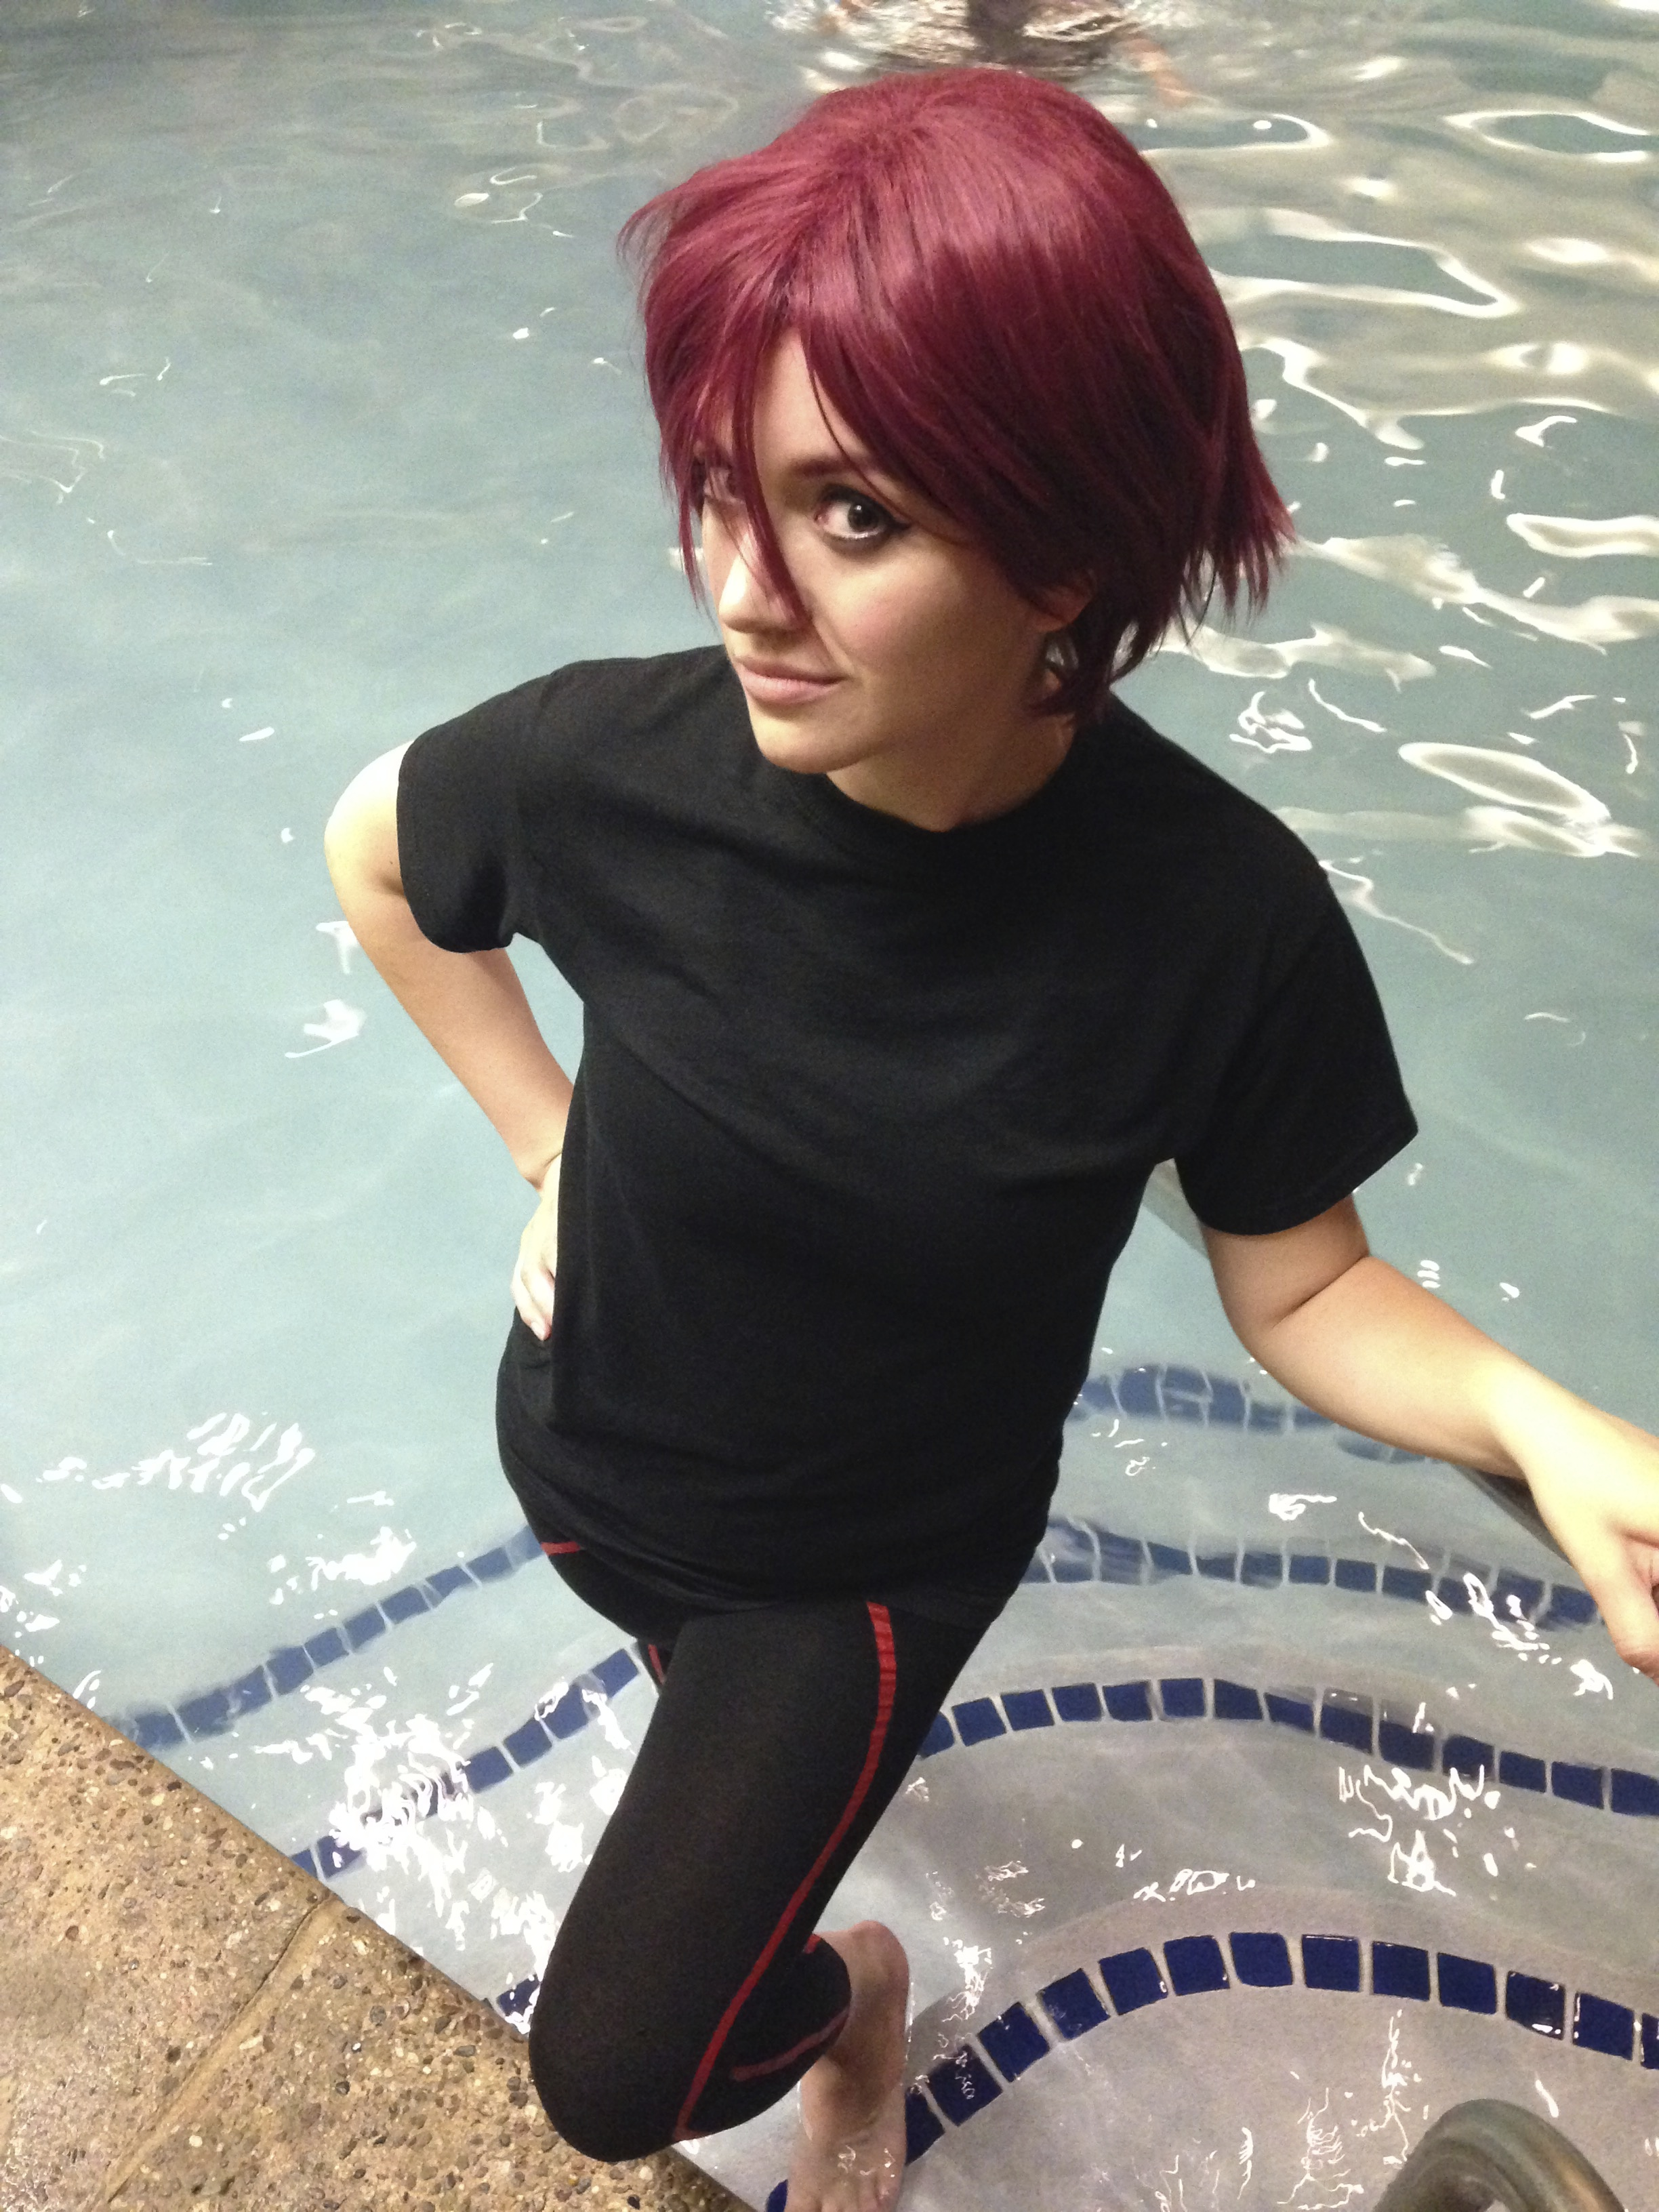 """""""Since the anime revolves around swimming, we decided it would make sense to take photos by the pool to follow the theme,"""" Liz says about cosplaying Rin Matsuoka from the animated series Free! at AnimeNEXT in June (shot by Peter Vazquez)."""